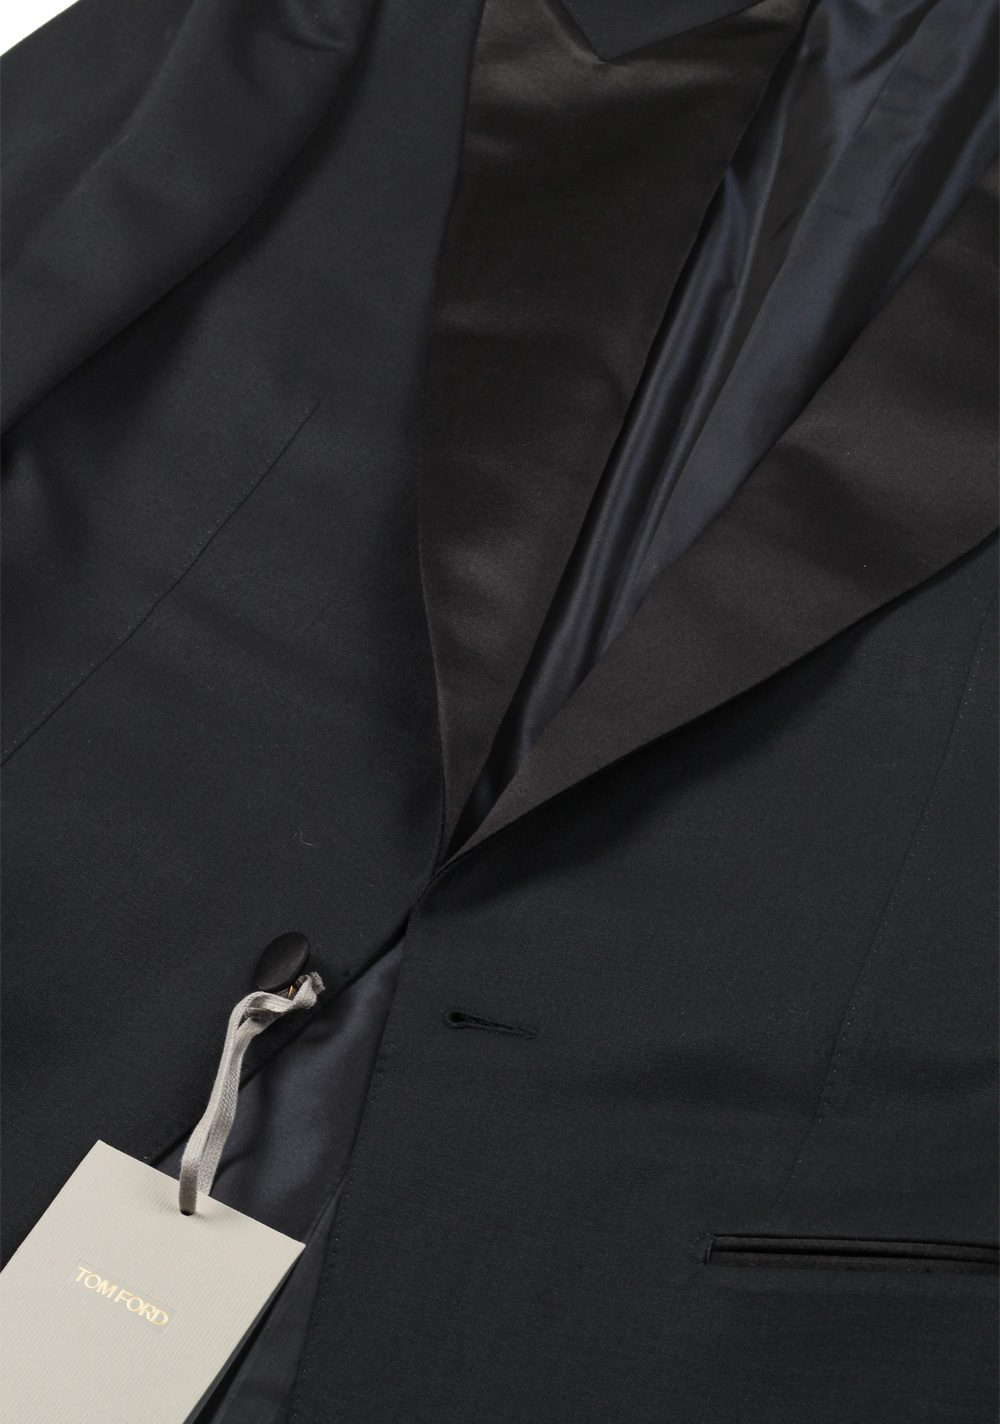 TOM FORD Windsor Black Tuxedo Suit Smoking Size 48 / 38R U.S. Fit A | Costume Limité